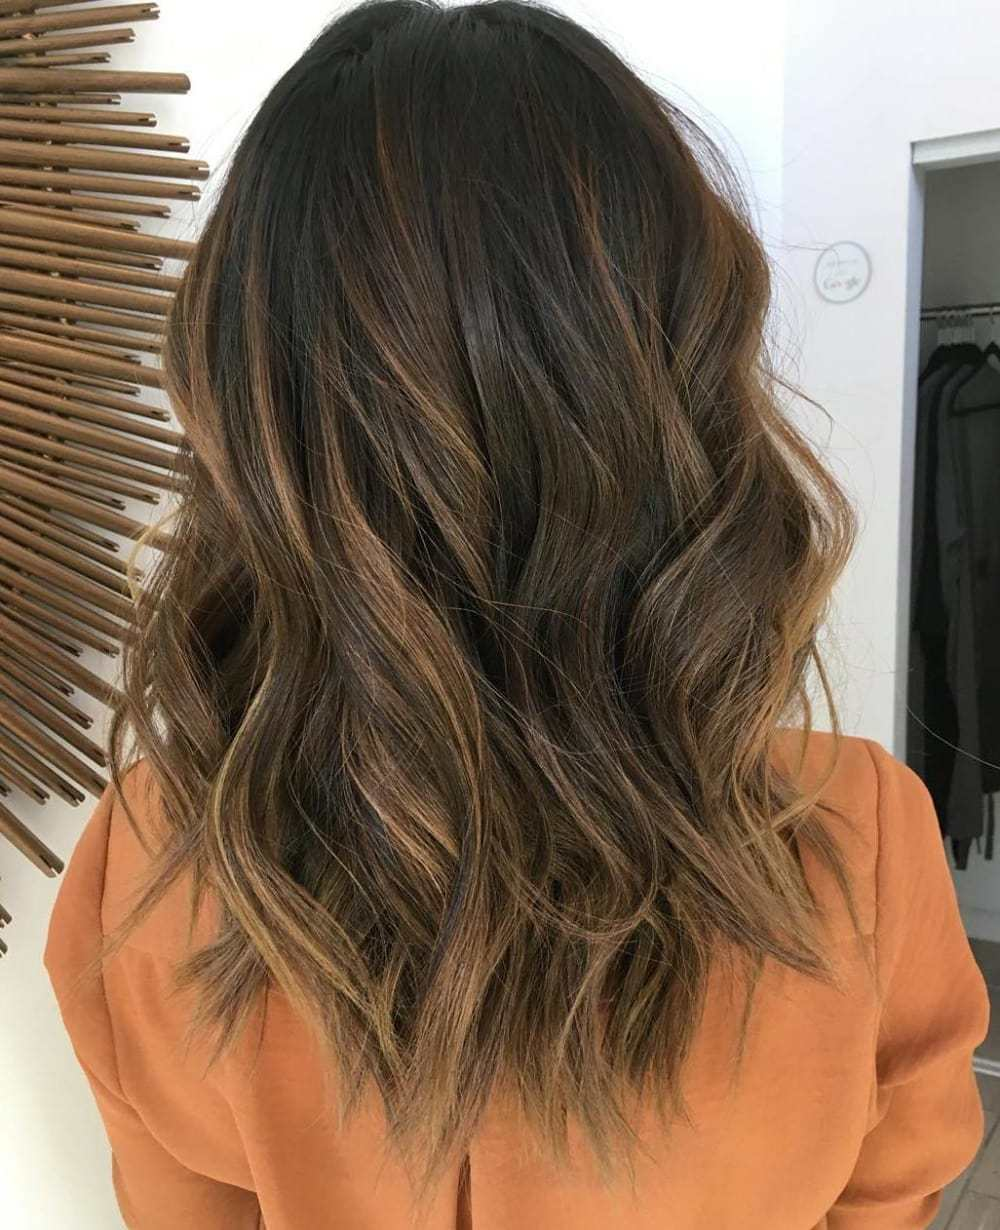 Trubridal Wedding Blog 90 Balayage Hair Color Ideas With Blonde